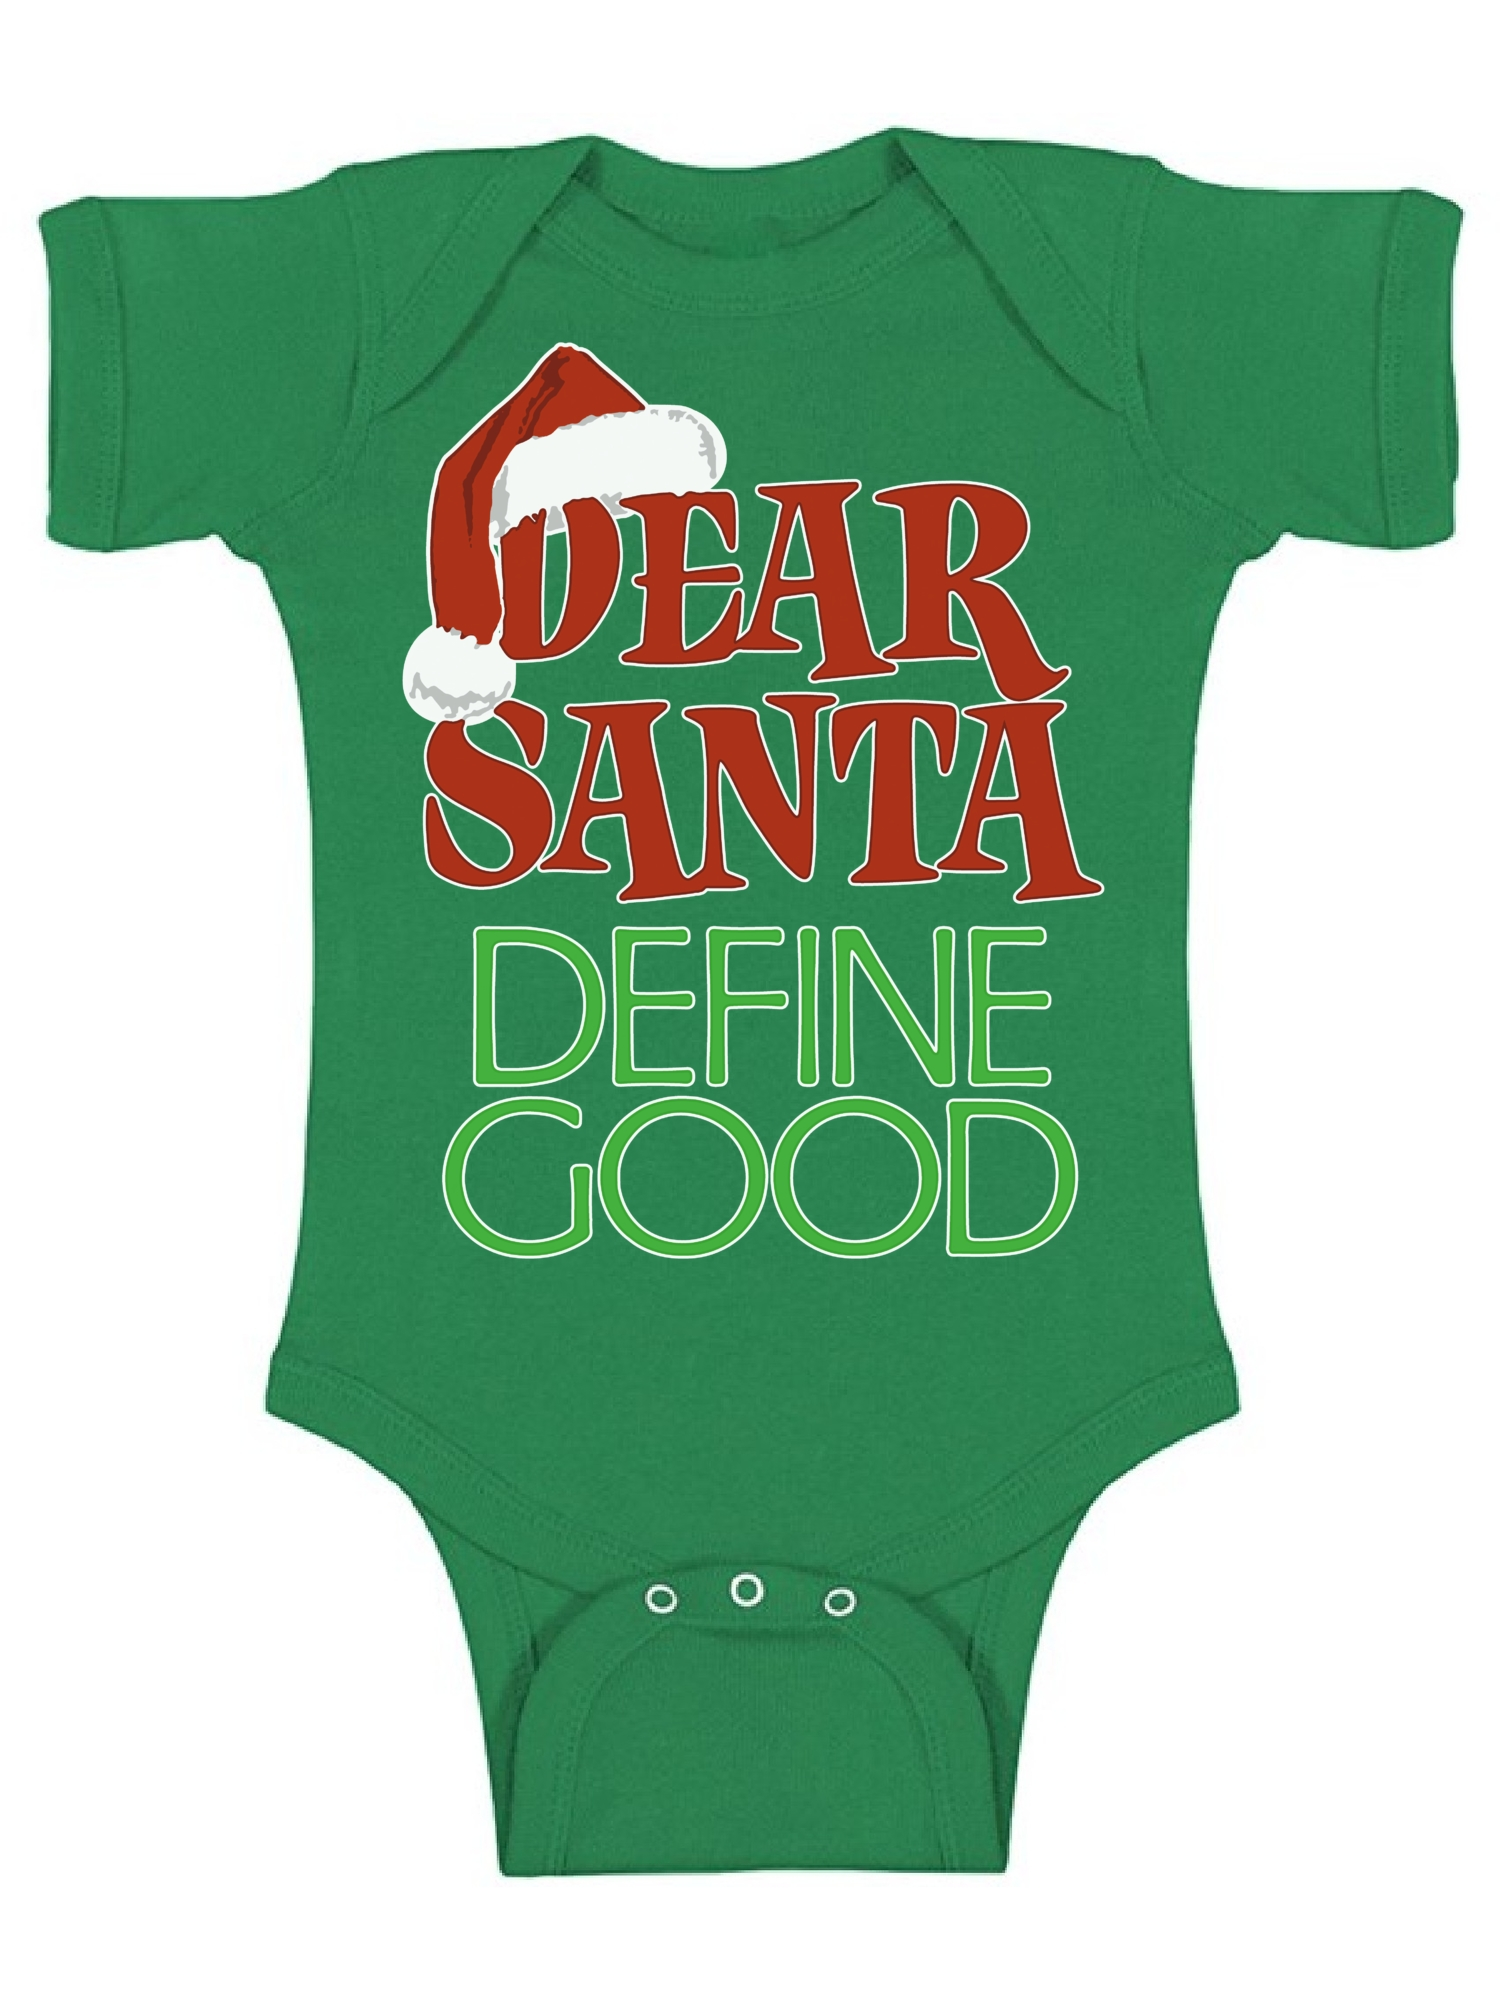 Choose Size and Color Define Good Christmas Embroidered Baby Bodysuit Dear Santa